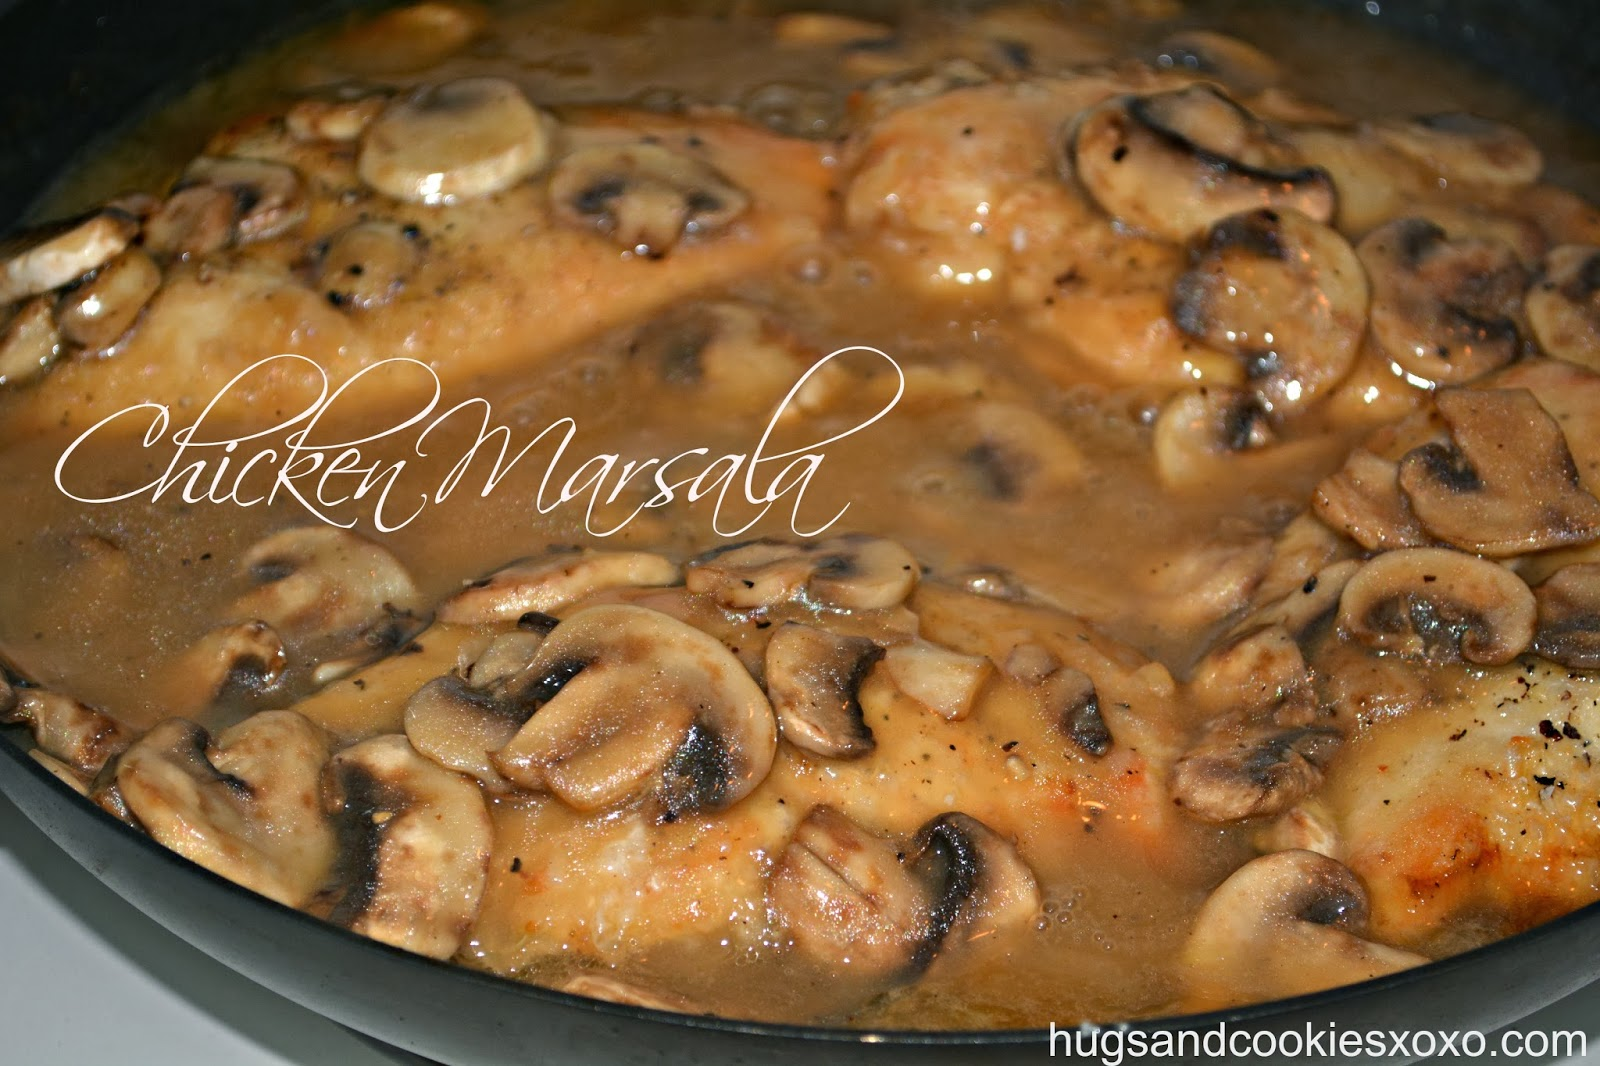 MOST AMAZING CHICKEN MARSALA - Hugs and Cookies XOXO